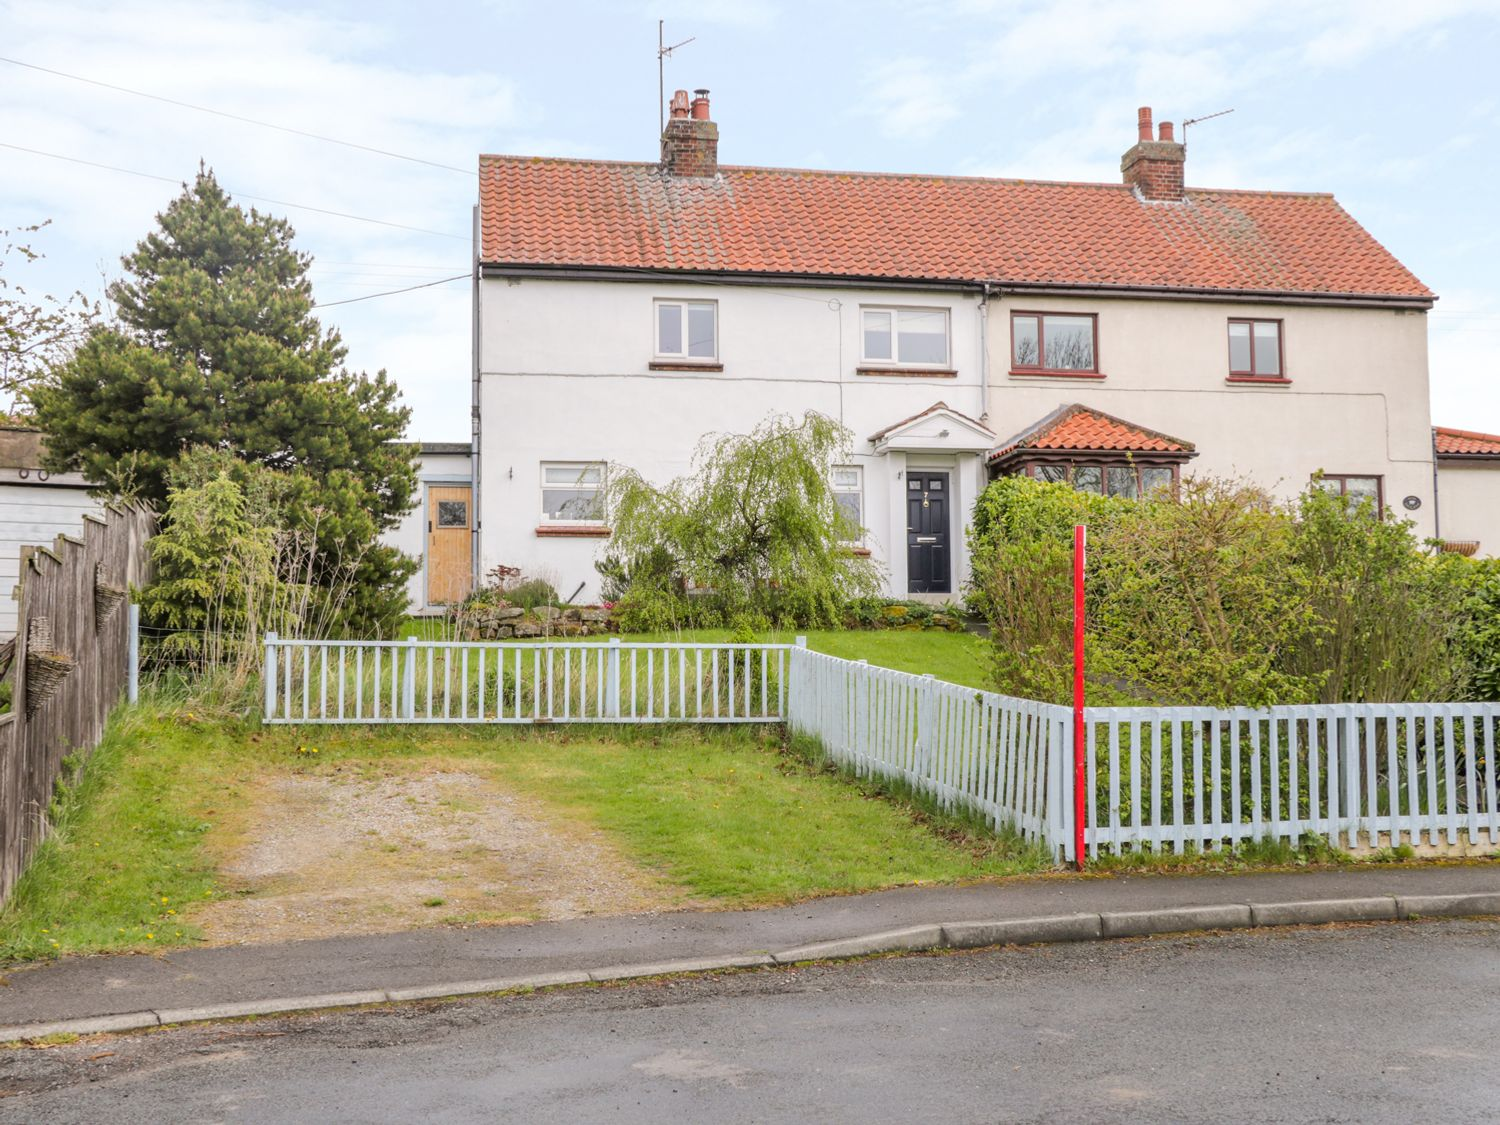 7 Dale End - Whitby & North Yorkshire - 996062 - photo 1